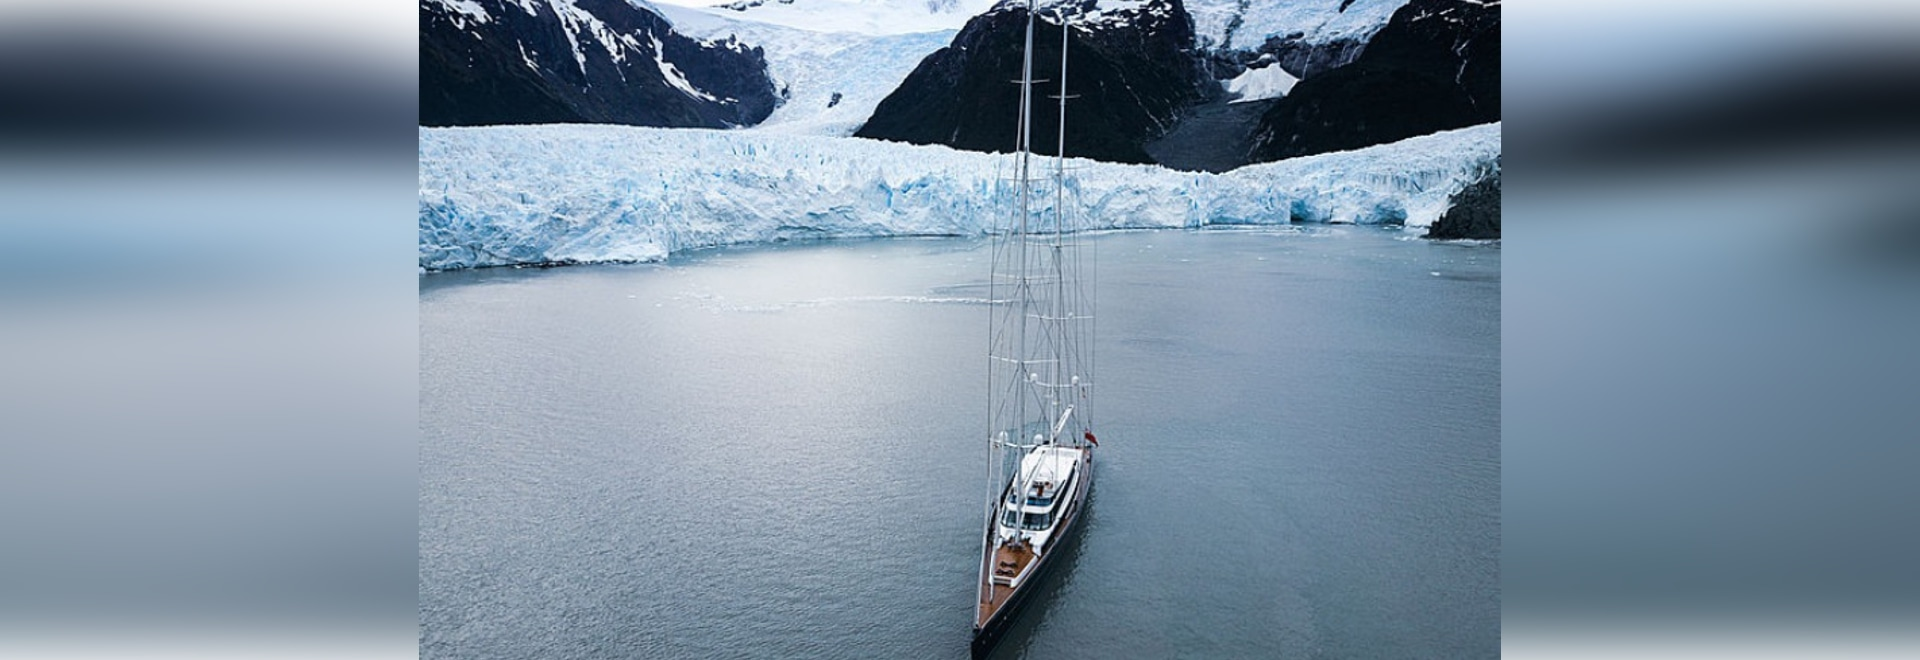 Anecdotes from the Patagonian Fjords